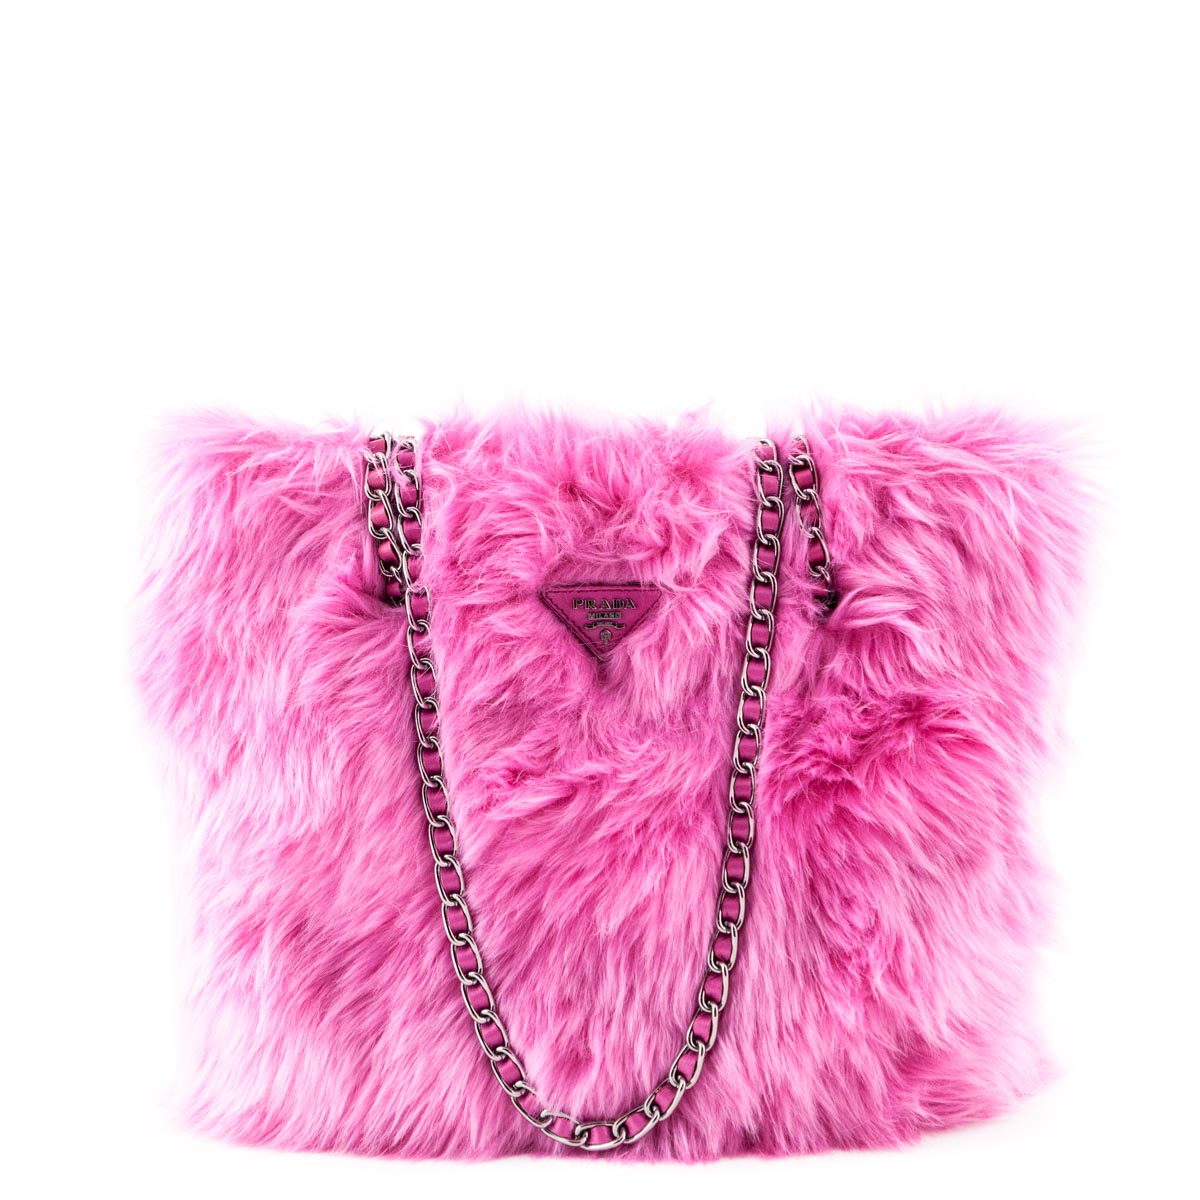 Prada Begonia Faux Fur Eco Pelliccia Chain Tote - LOVE that BAG - Preowned  Authentic Designer ... 63681deb794c6